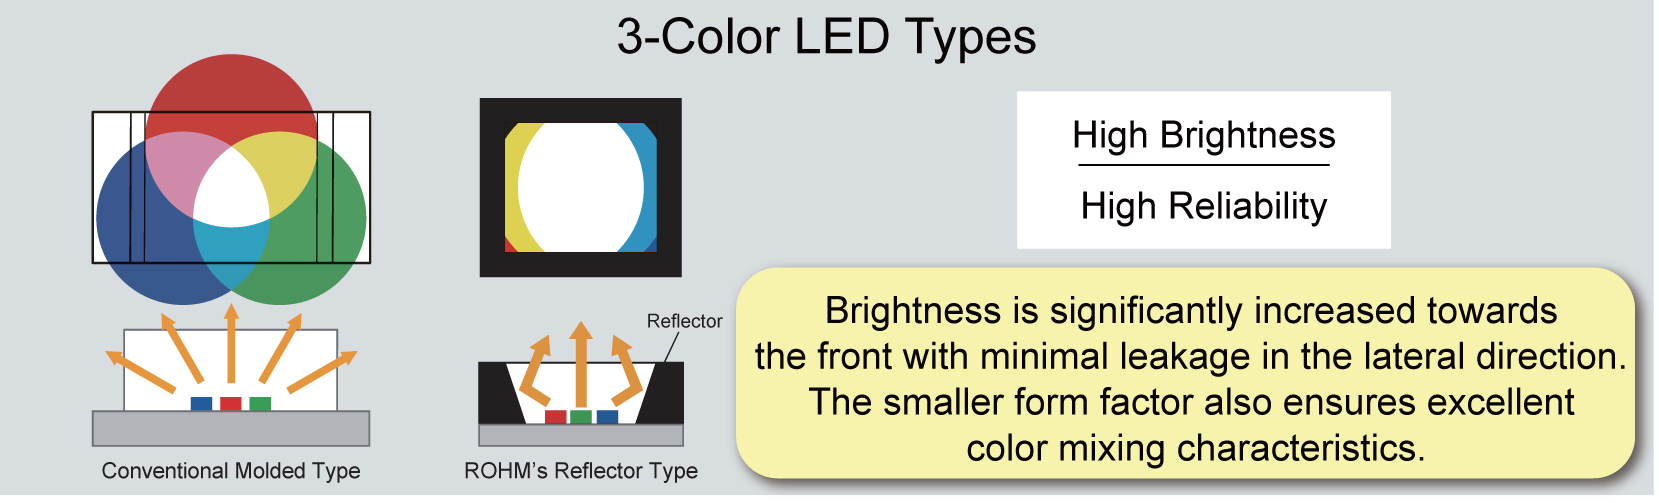 The Worlds Smallest Reflector Type High Brightness 3 Color Led Leds Image Available Http Marketwirecom Library Mwgo 2017 1 30 11g128728 Images 43 E 2 303e9986742ea03ea35f934e405e14ee